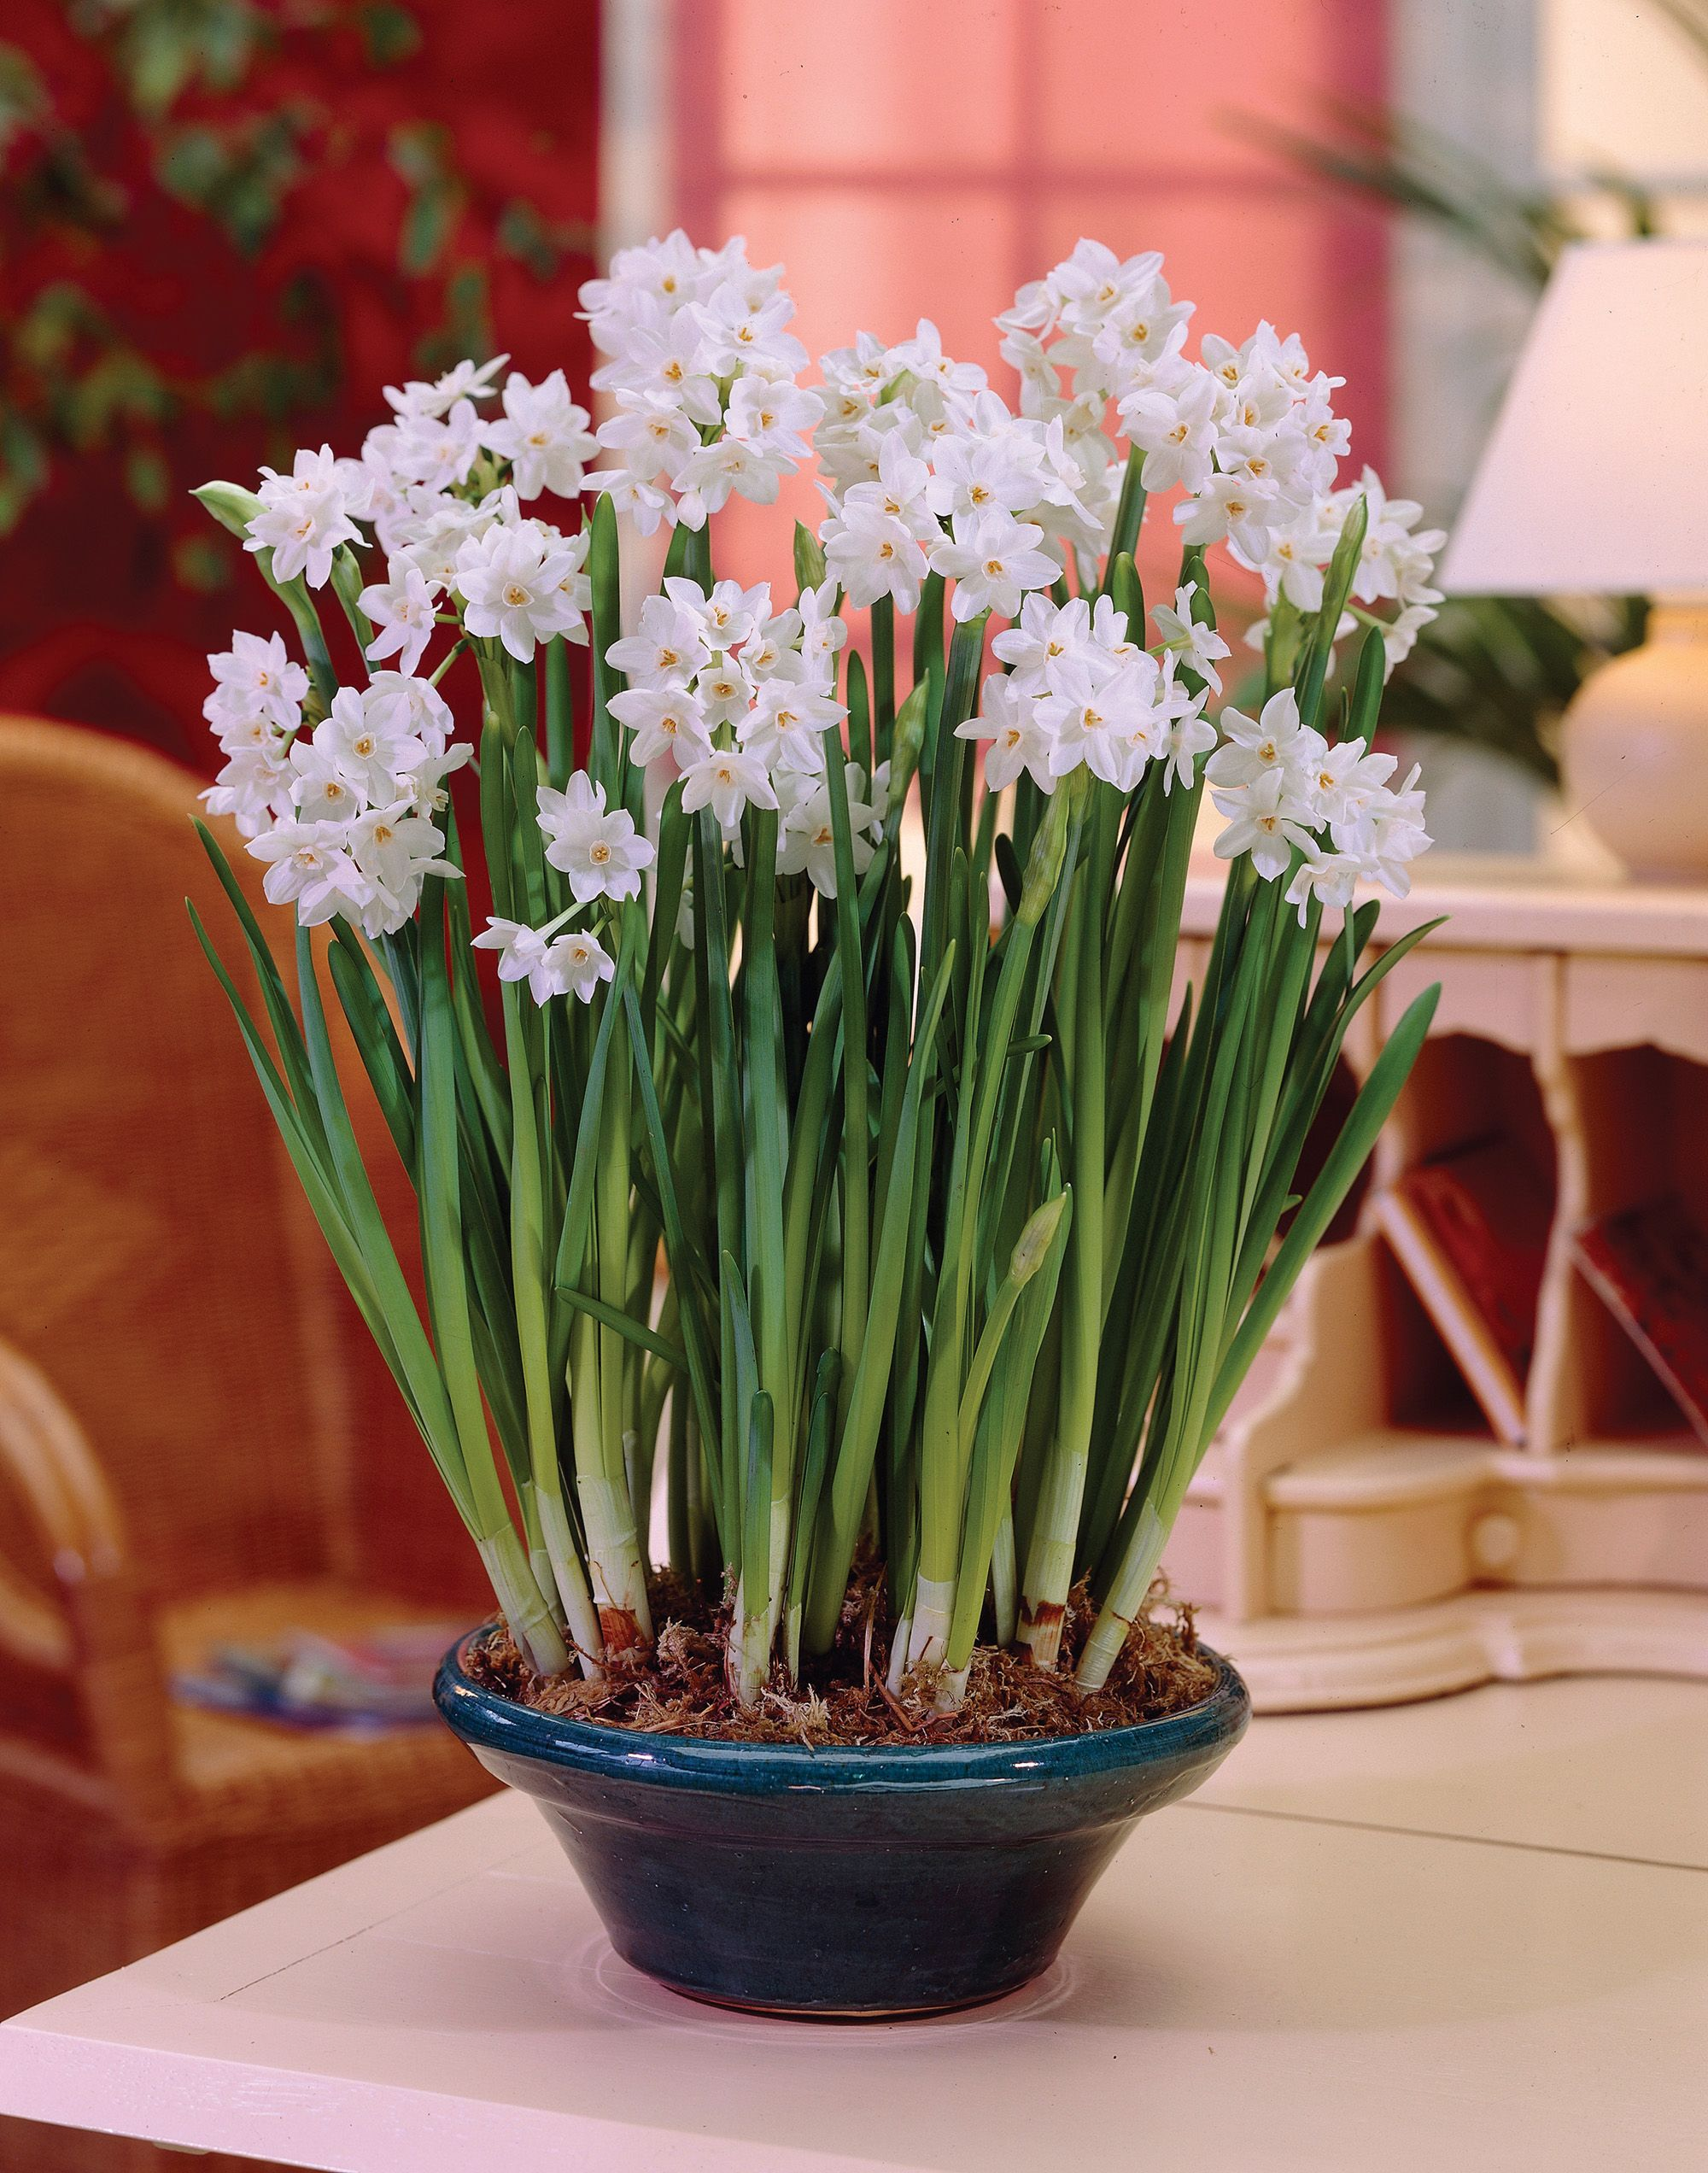 paperwhites images copyrighted by van zyverden and used with